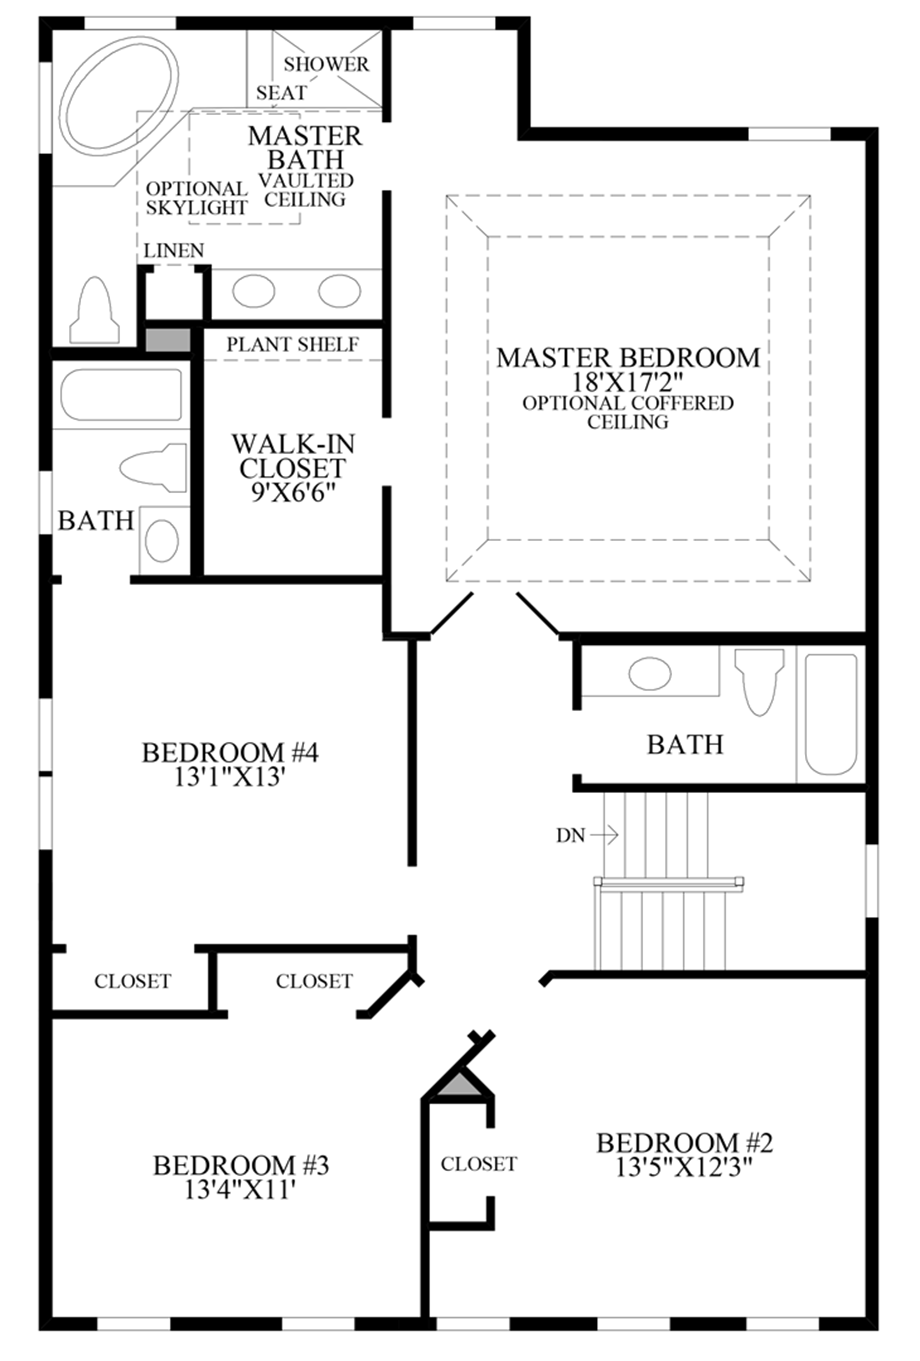 Additional Bath and Expanded Family Room - 2nd Floor Floor Plan